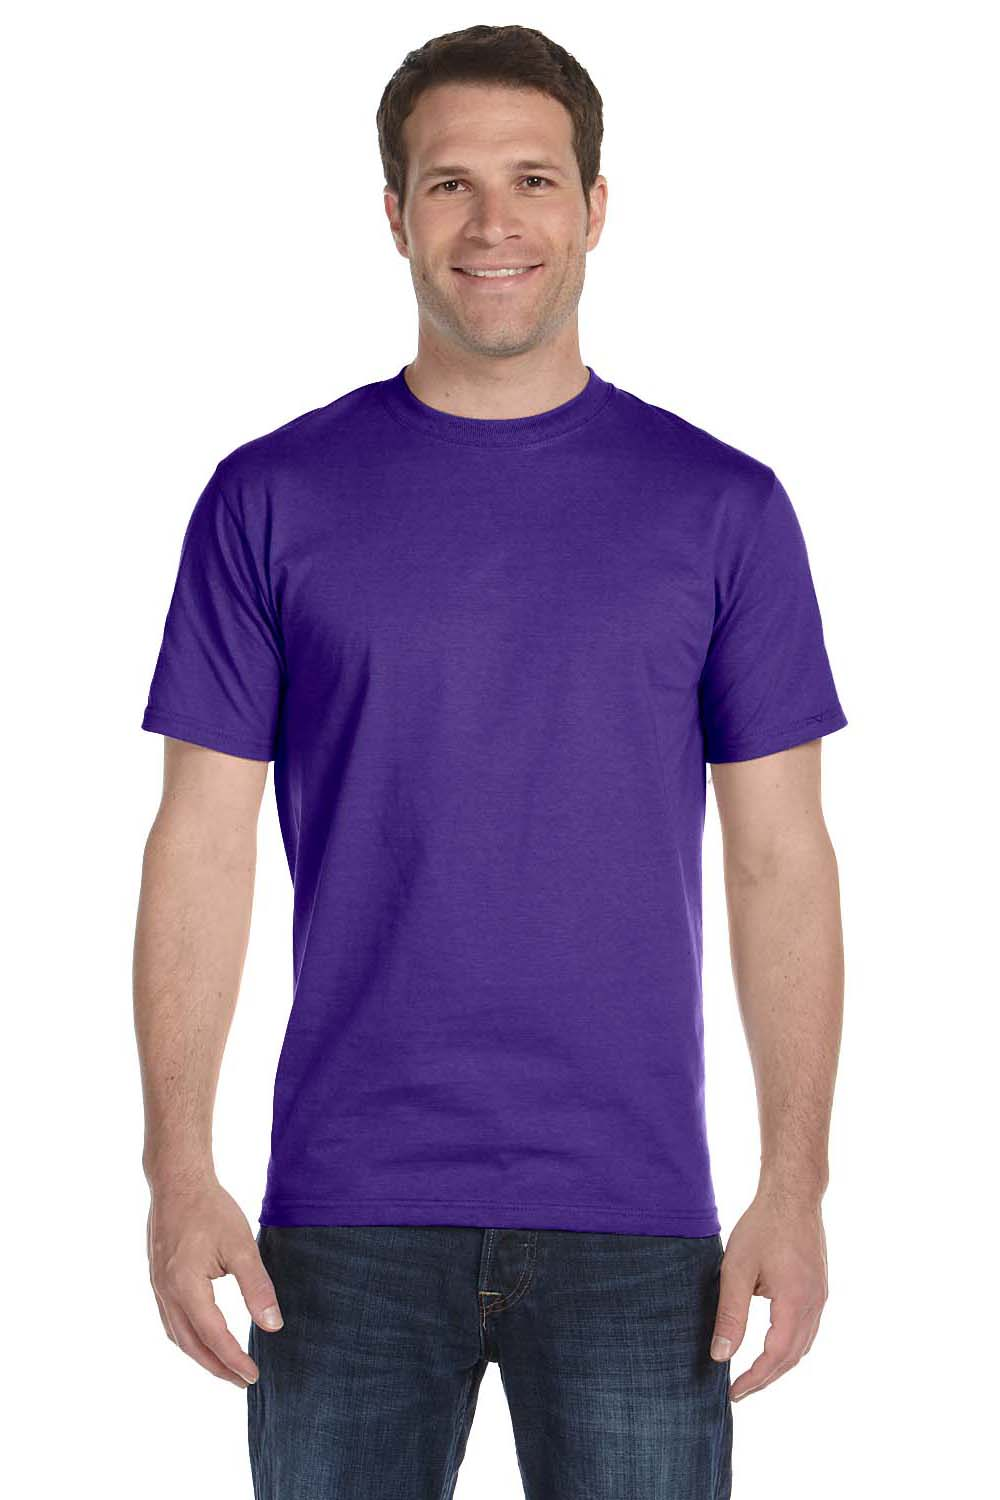 Hanes 5180 Mens Beefy-T Short Sleeve Crewneck T-Shirt Purple Front